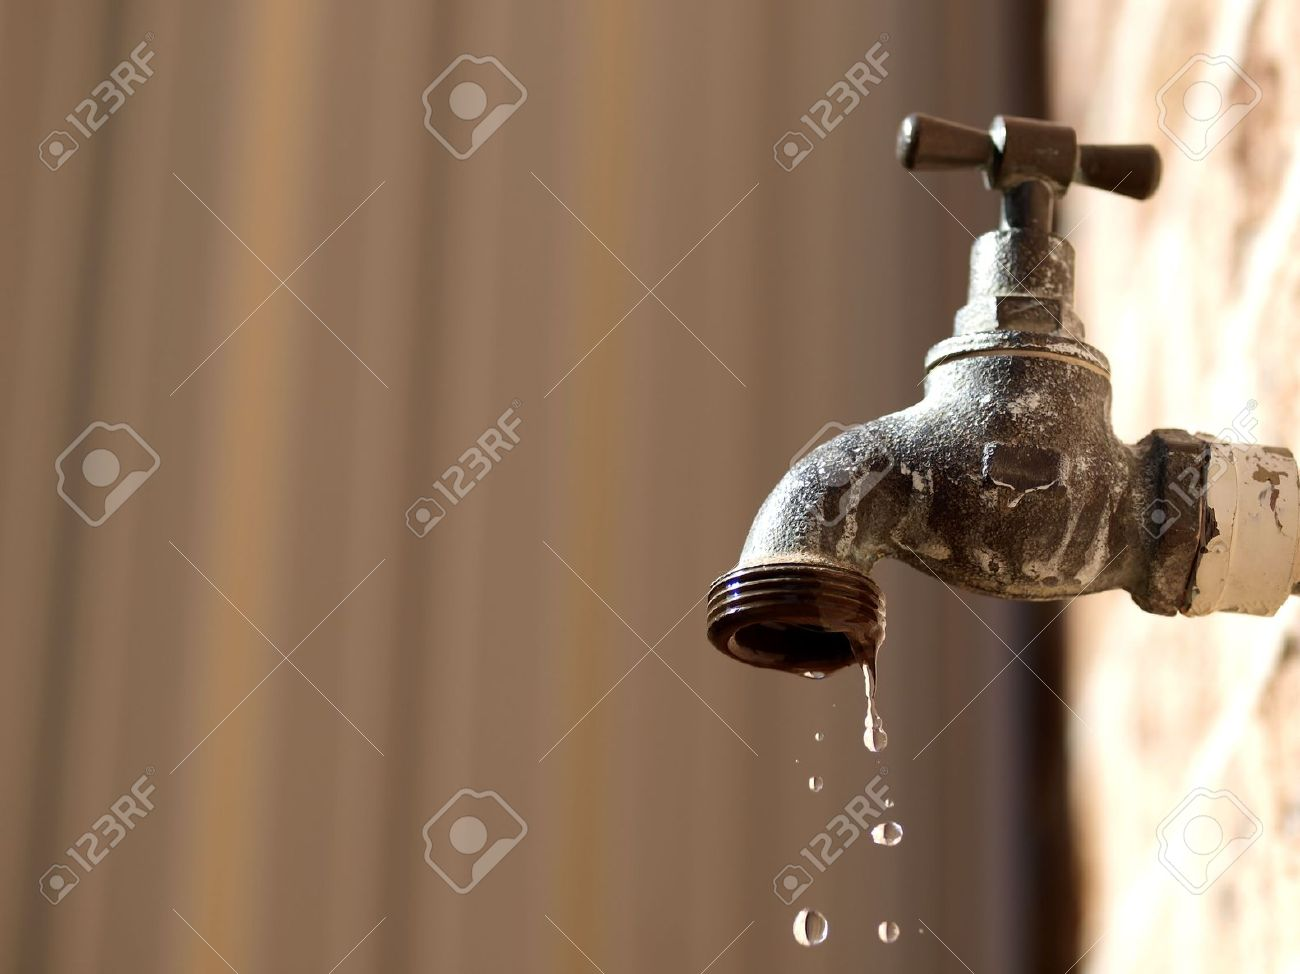 Water Faucet Stock Photos. Royalty Free Water Faucet Images